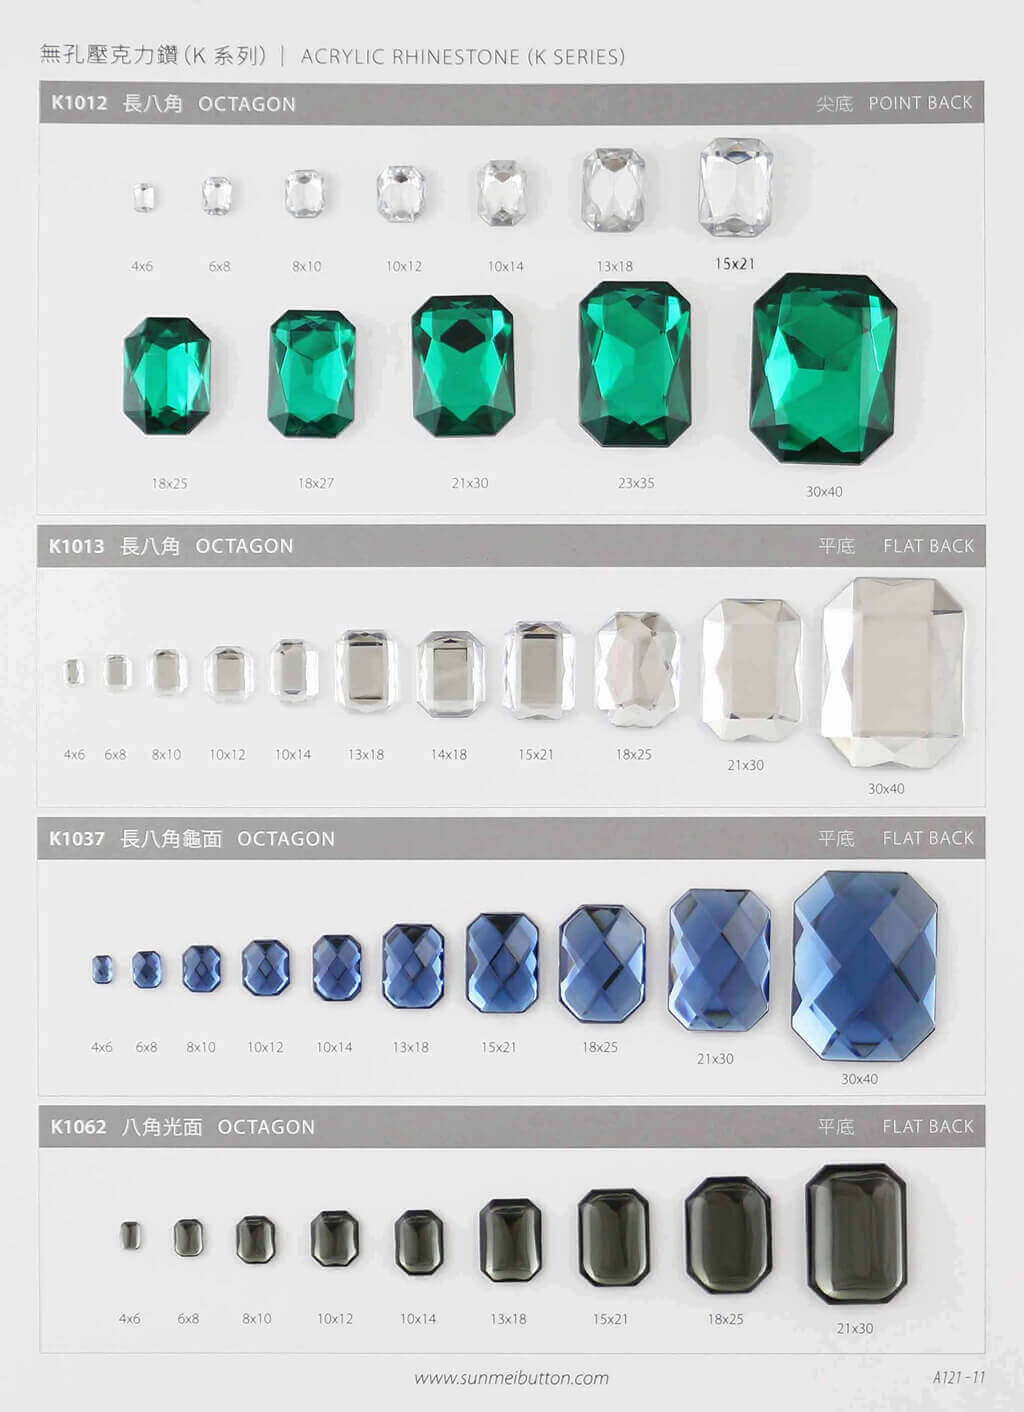 A121-11-acrylic rhinestone catalogue transparent